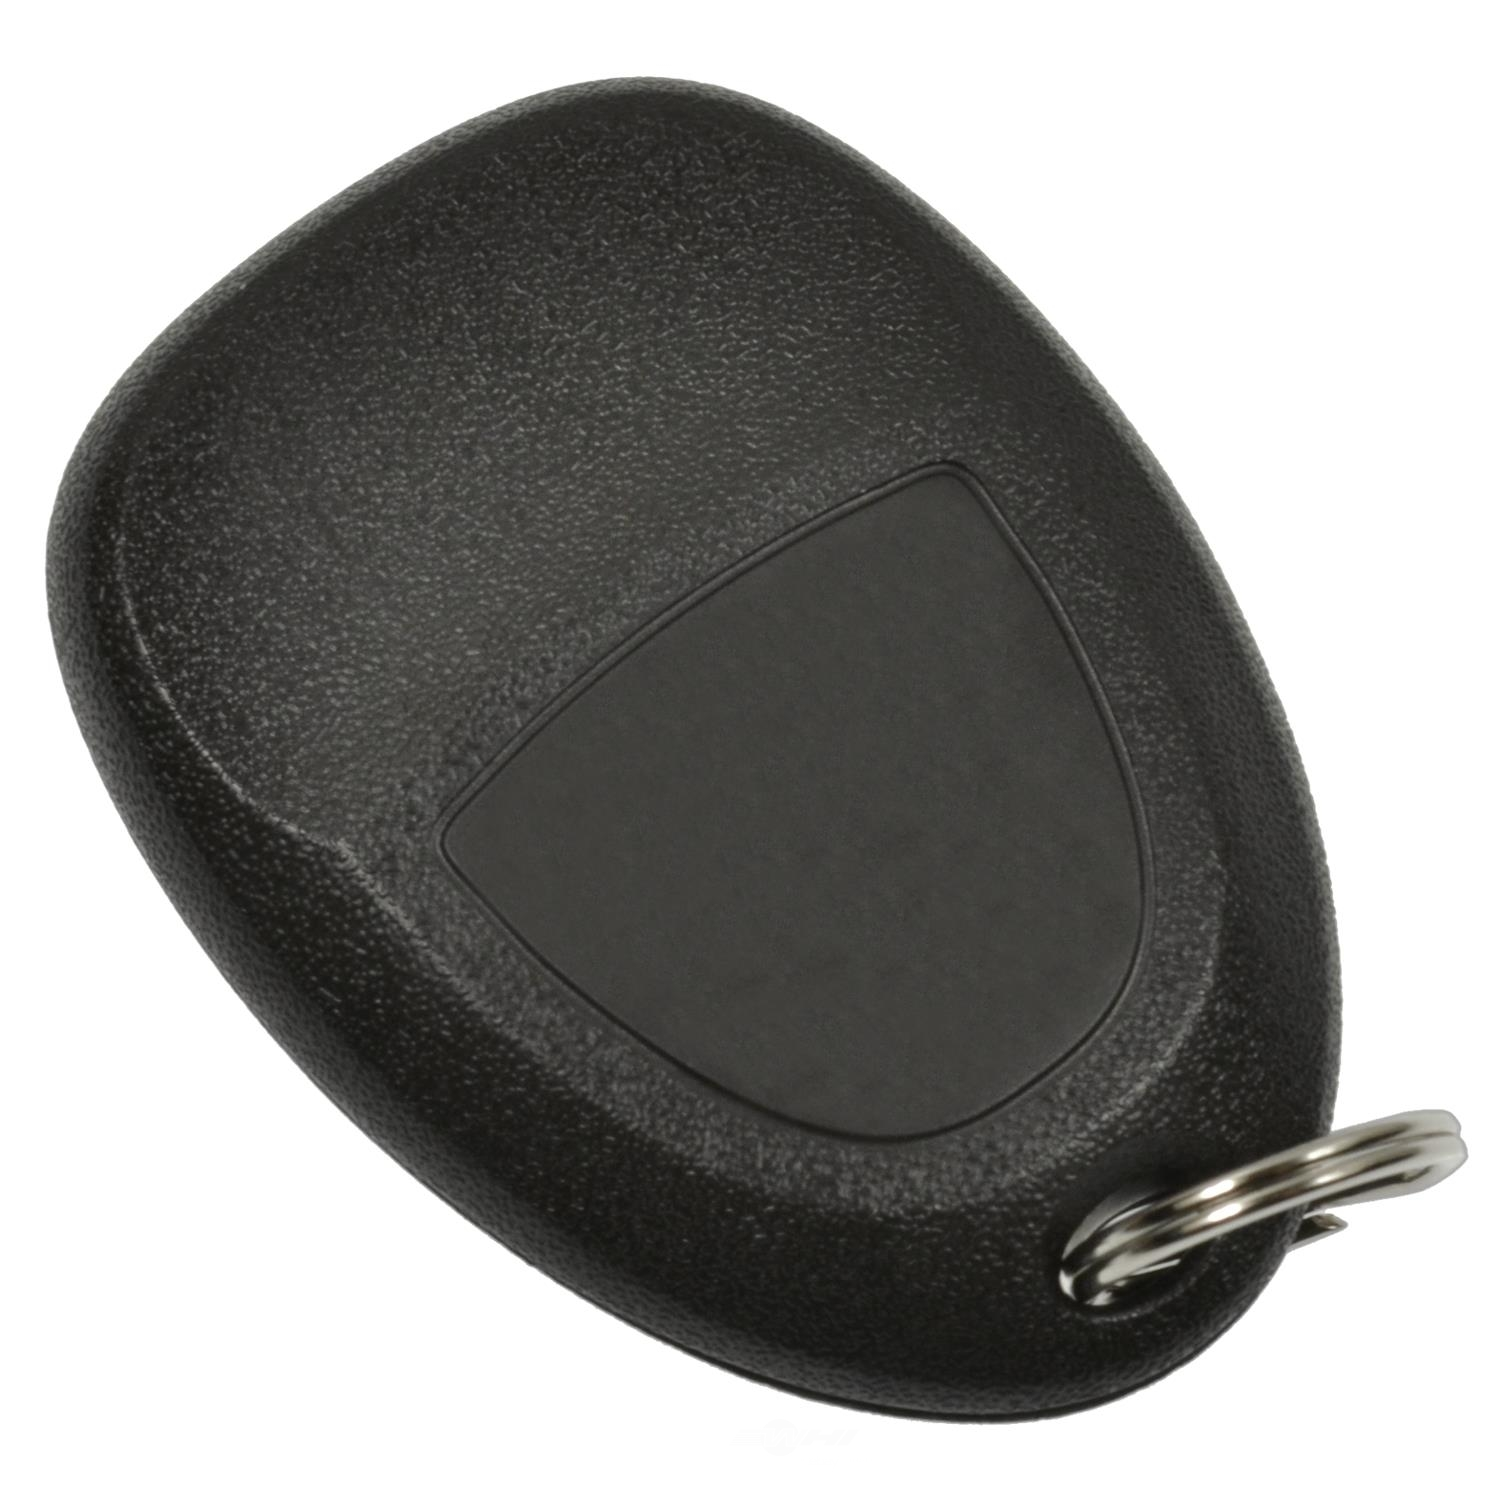 TECHSMART - Remote Control Transmitter for Keyless Entry & Alarm System - TCS C02022